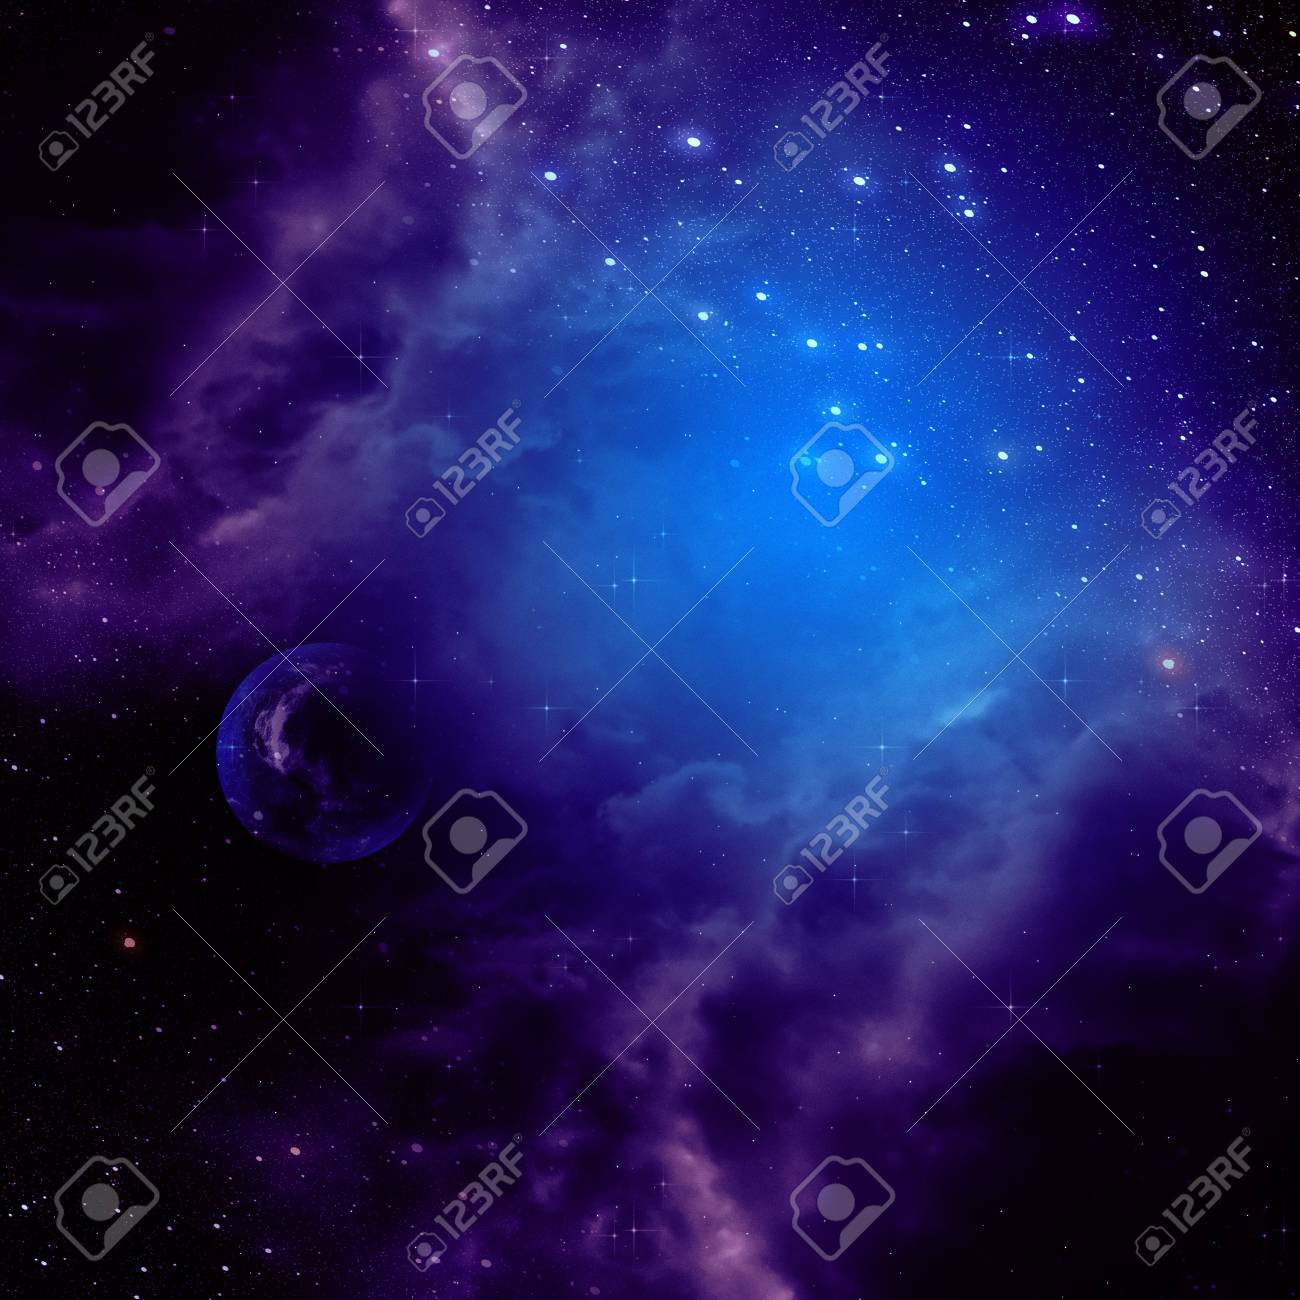 Purple Space Clouds And Stars Abstract Background